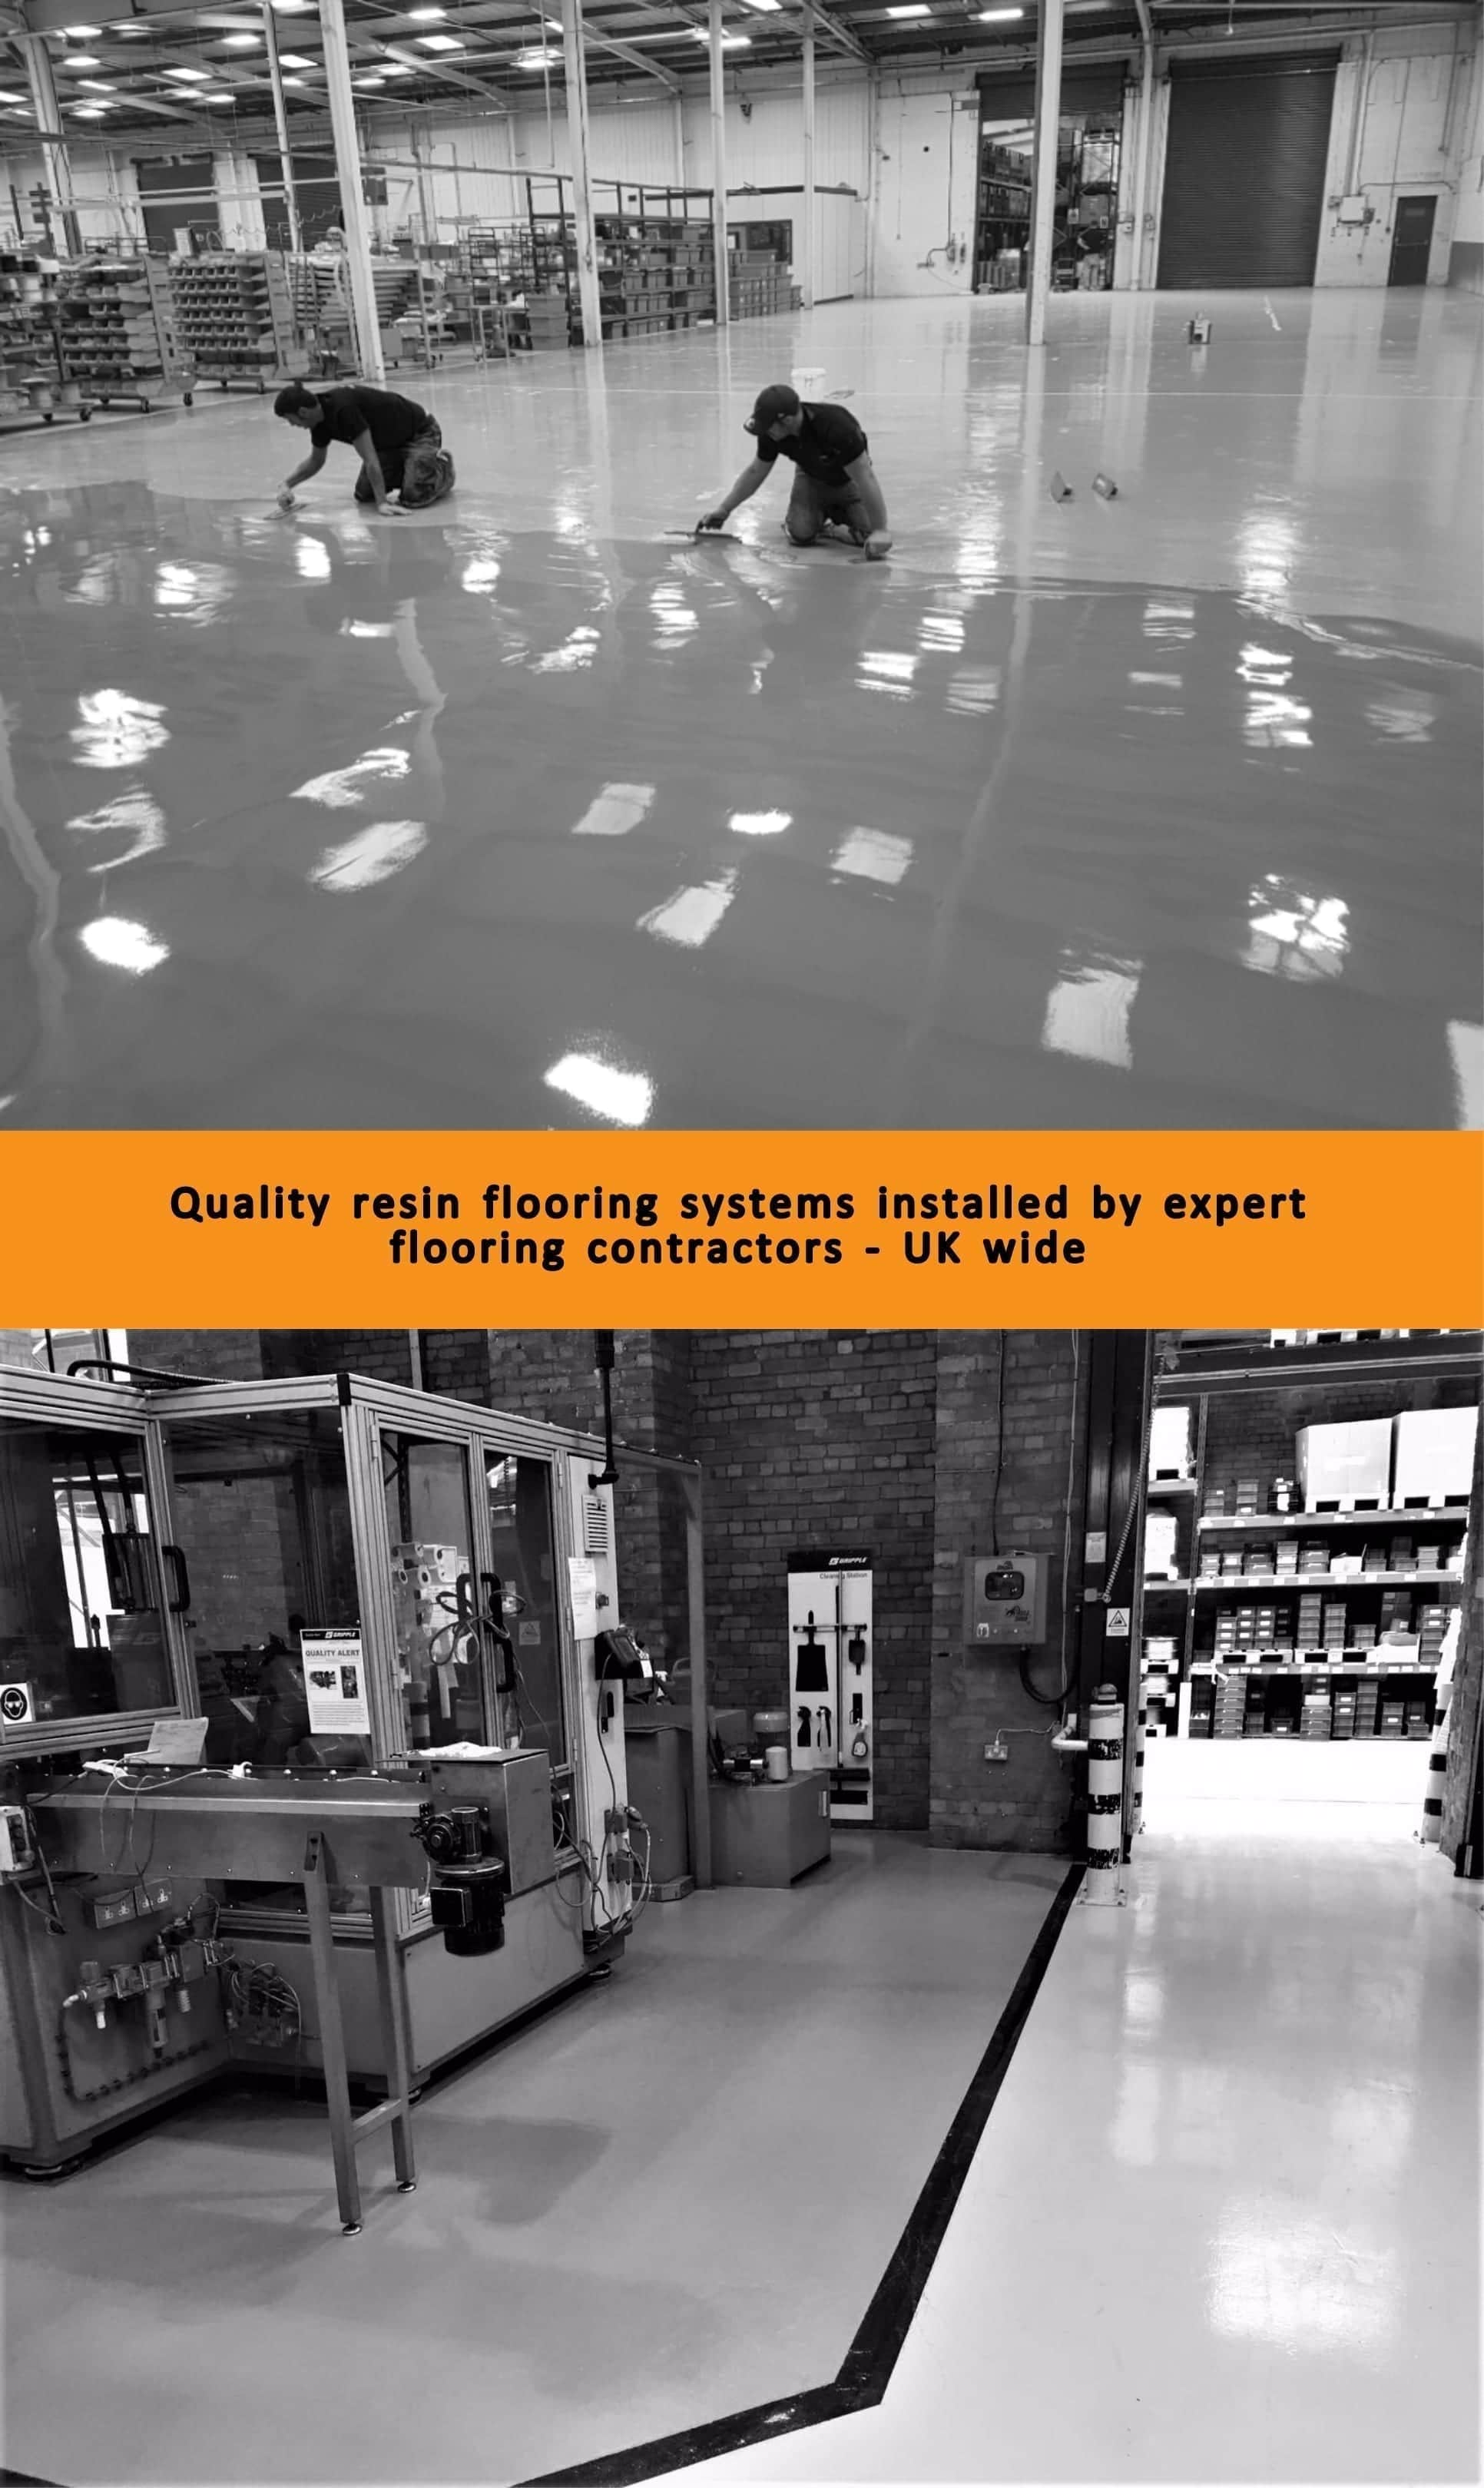 speciliat services - resin flooring contractors uk - monarch